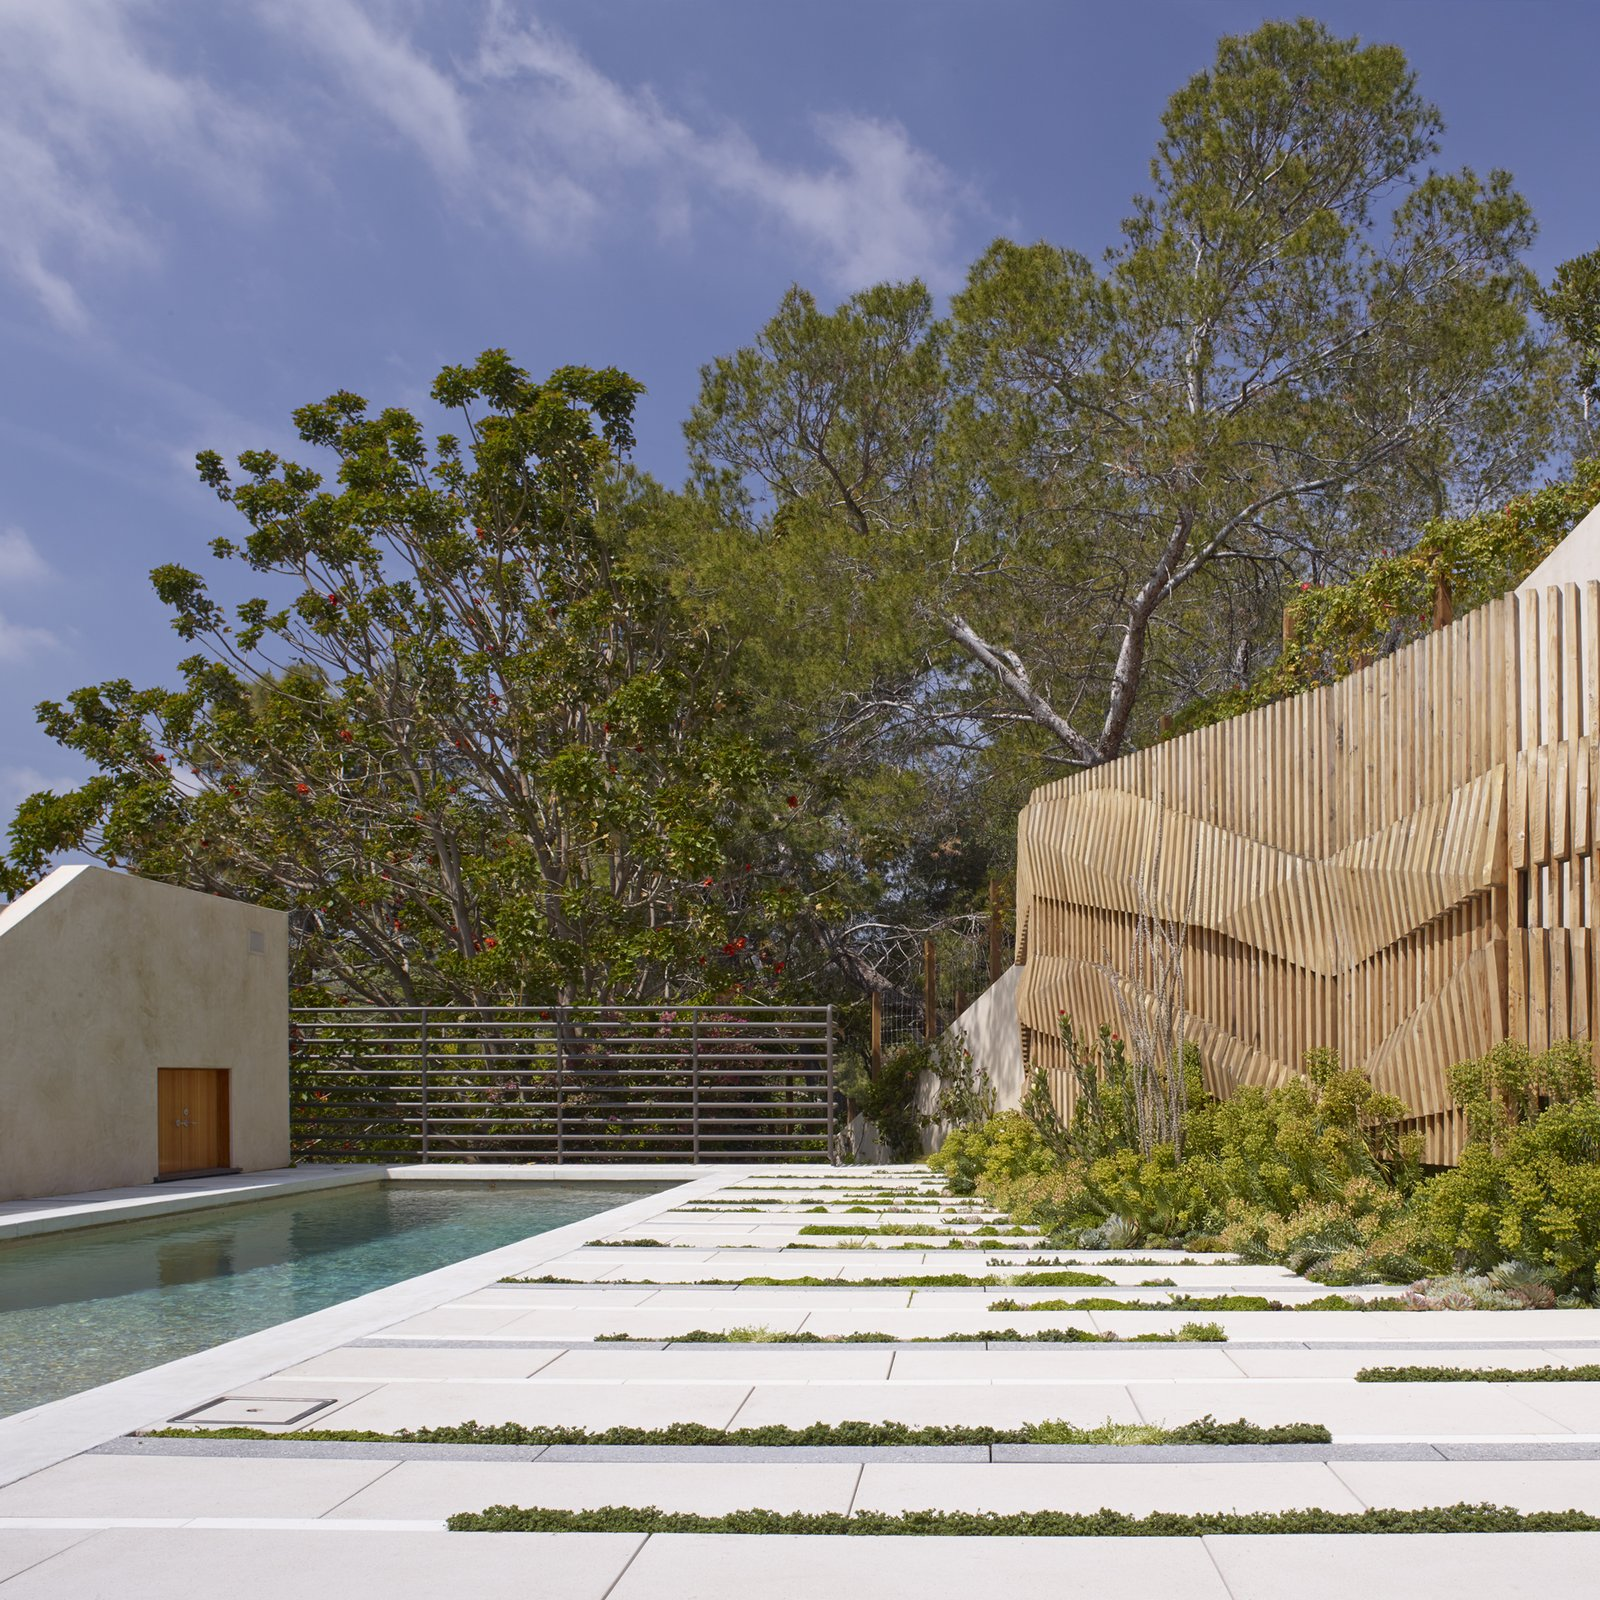 #pooldesign #pool #exterior #outdoor #modern #minimal #concealed #sanctuary #dynamic #geometric #wood #wall #fence #privacy #backyard #patio #SurfaceDesign    30+ Best Modern Fences by William Lamb from Modern Pool